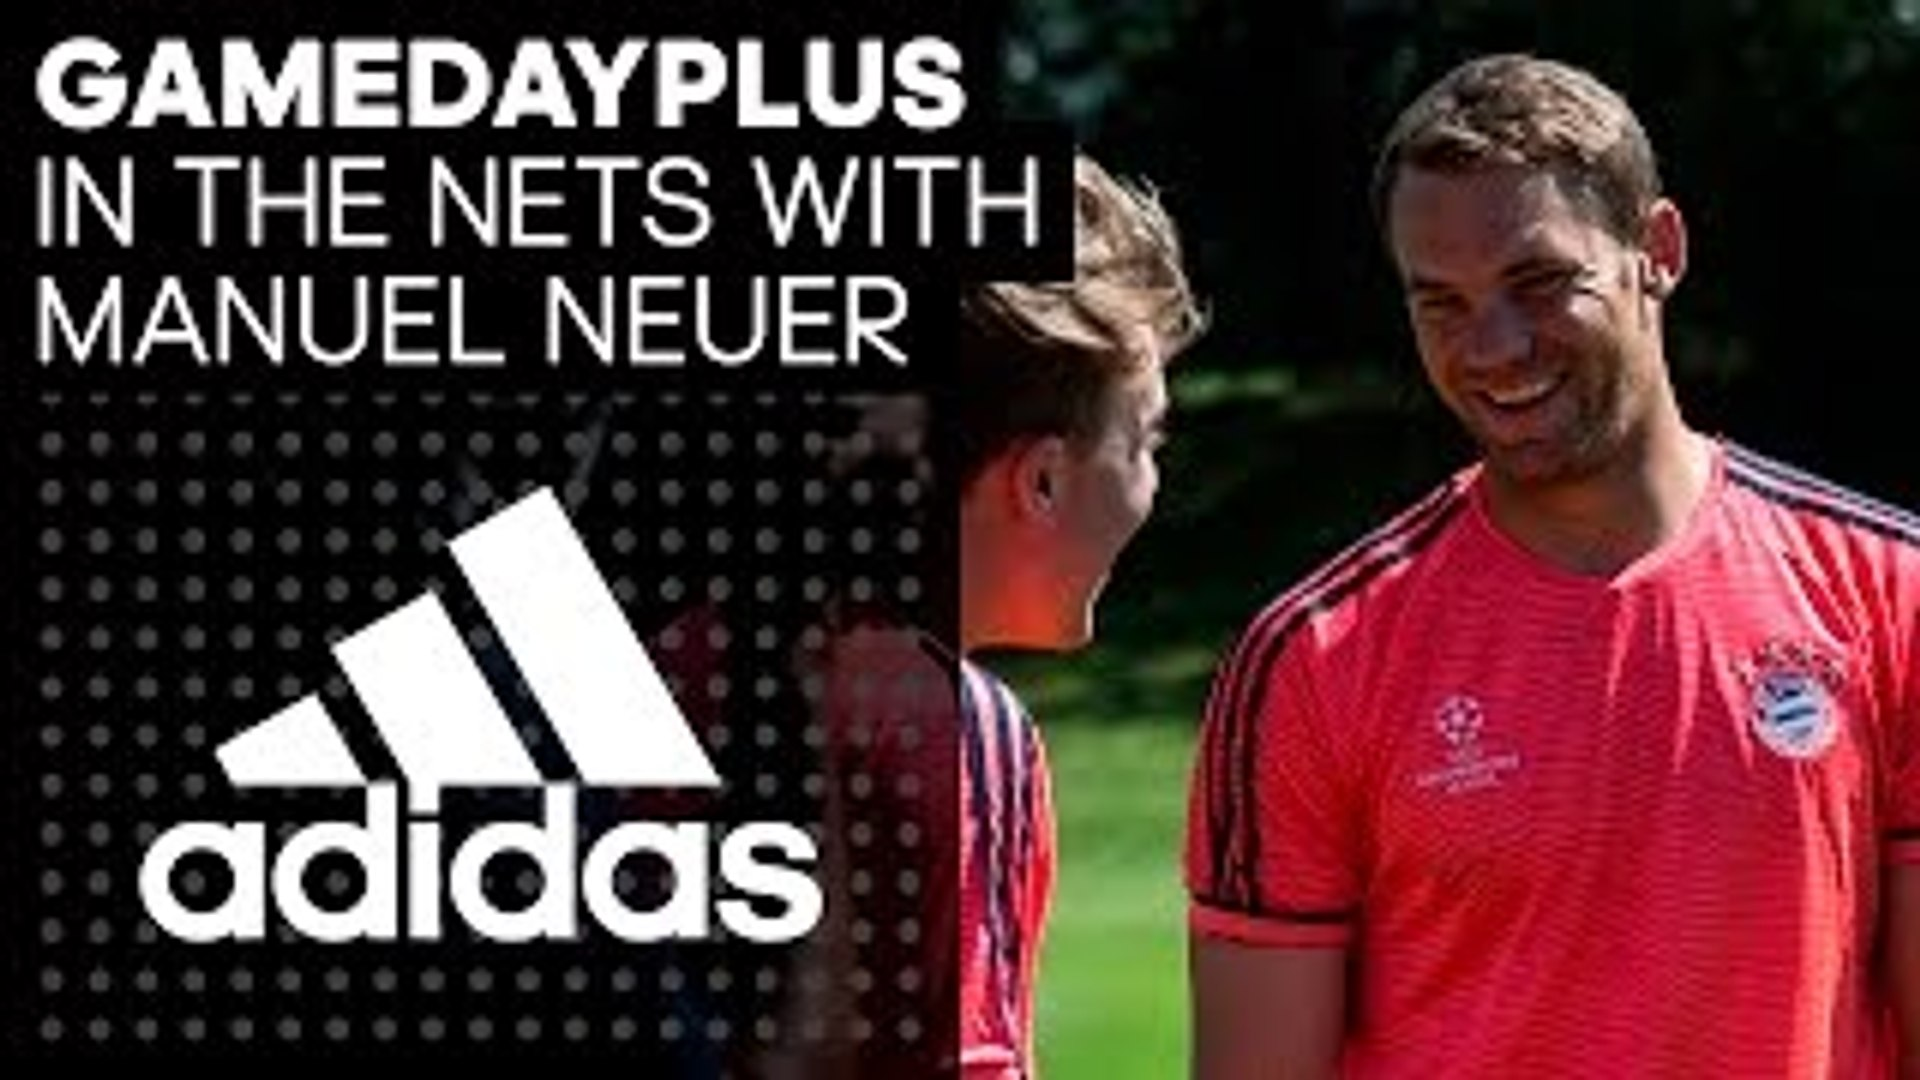 Goalkeeper Training With Manuel Neuer Gamedayplus adidas Football